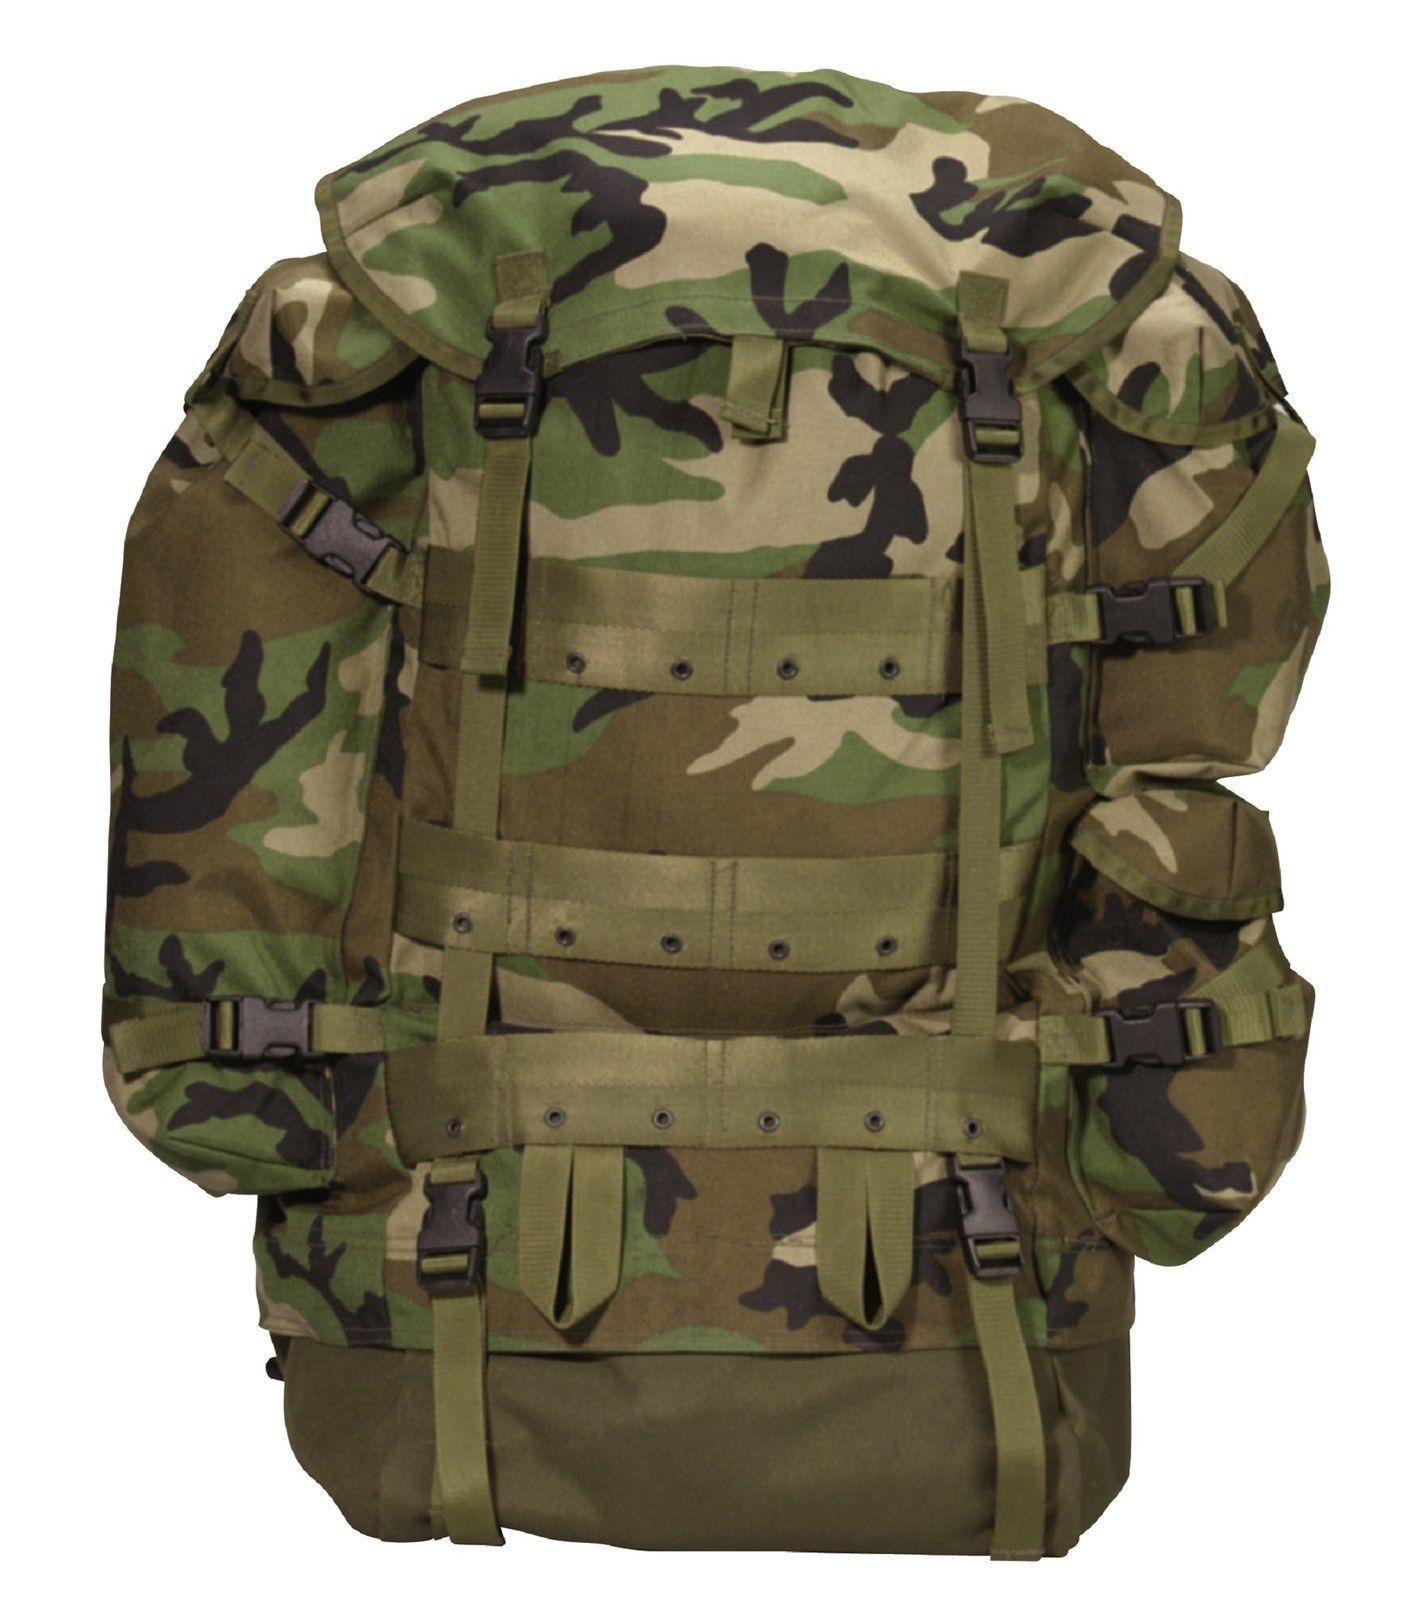 MILITARY TYPE CFP-90 COMBAT PACKS - Black or Woodland Camo Better ...